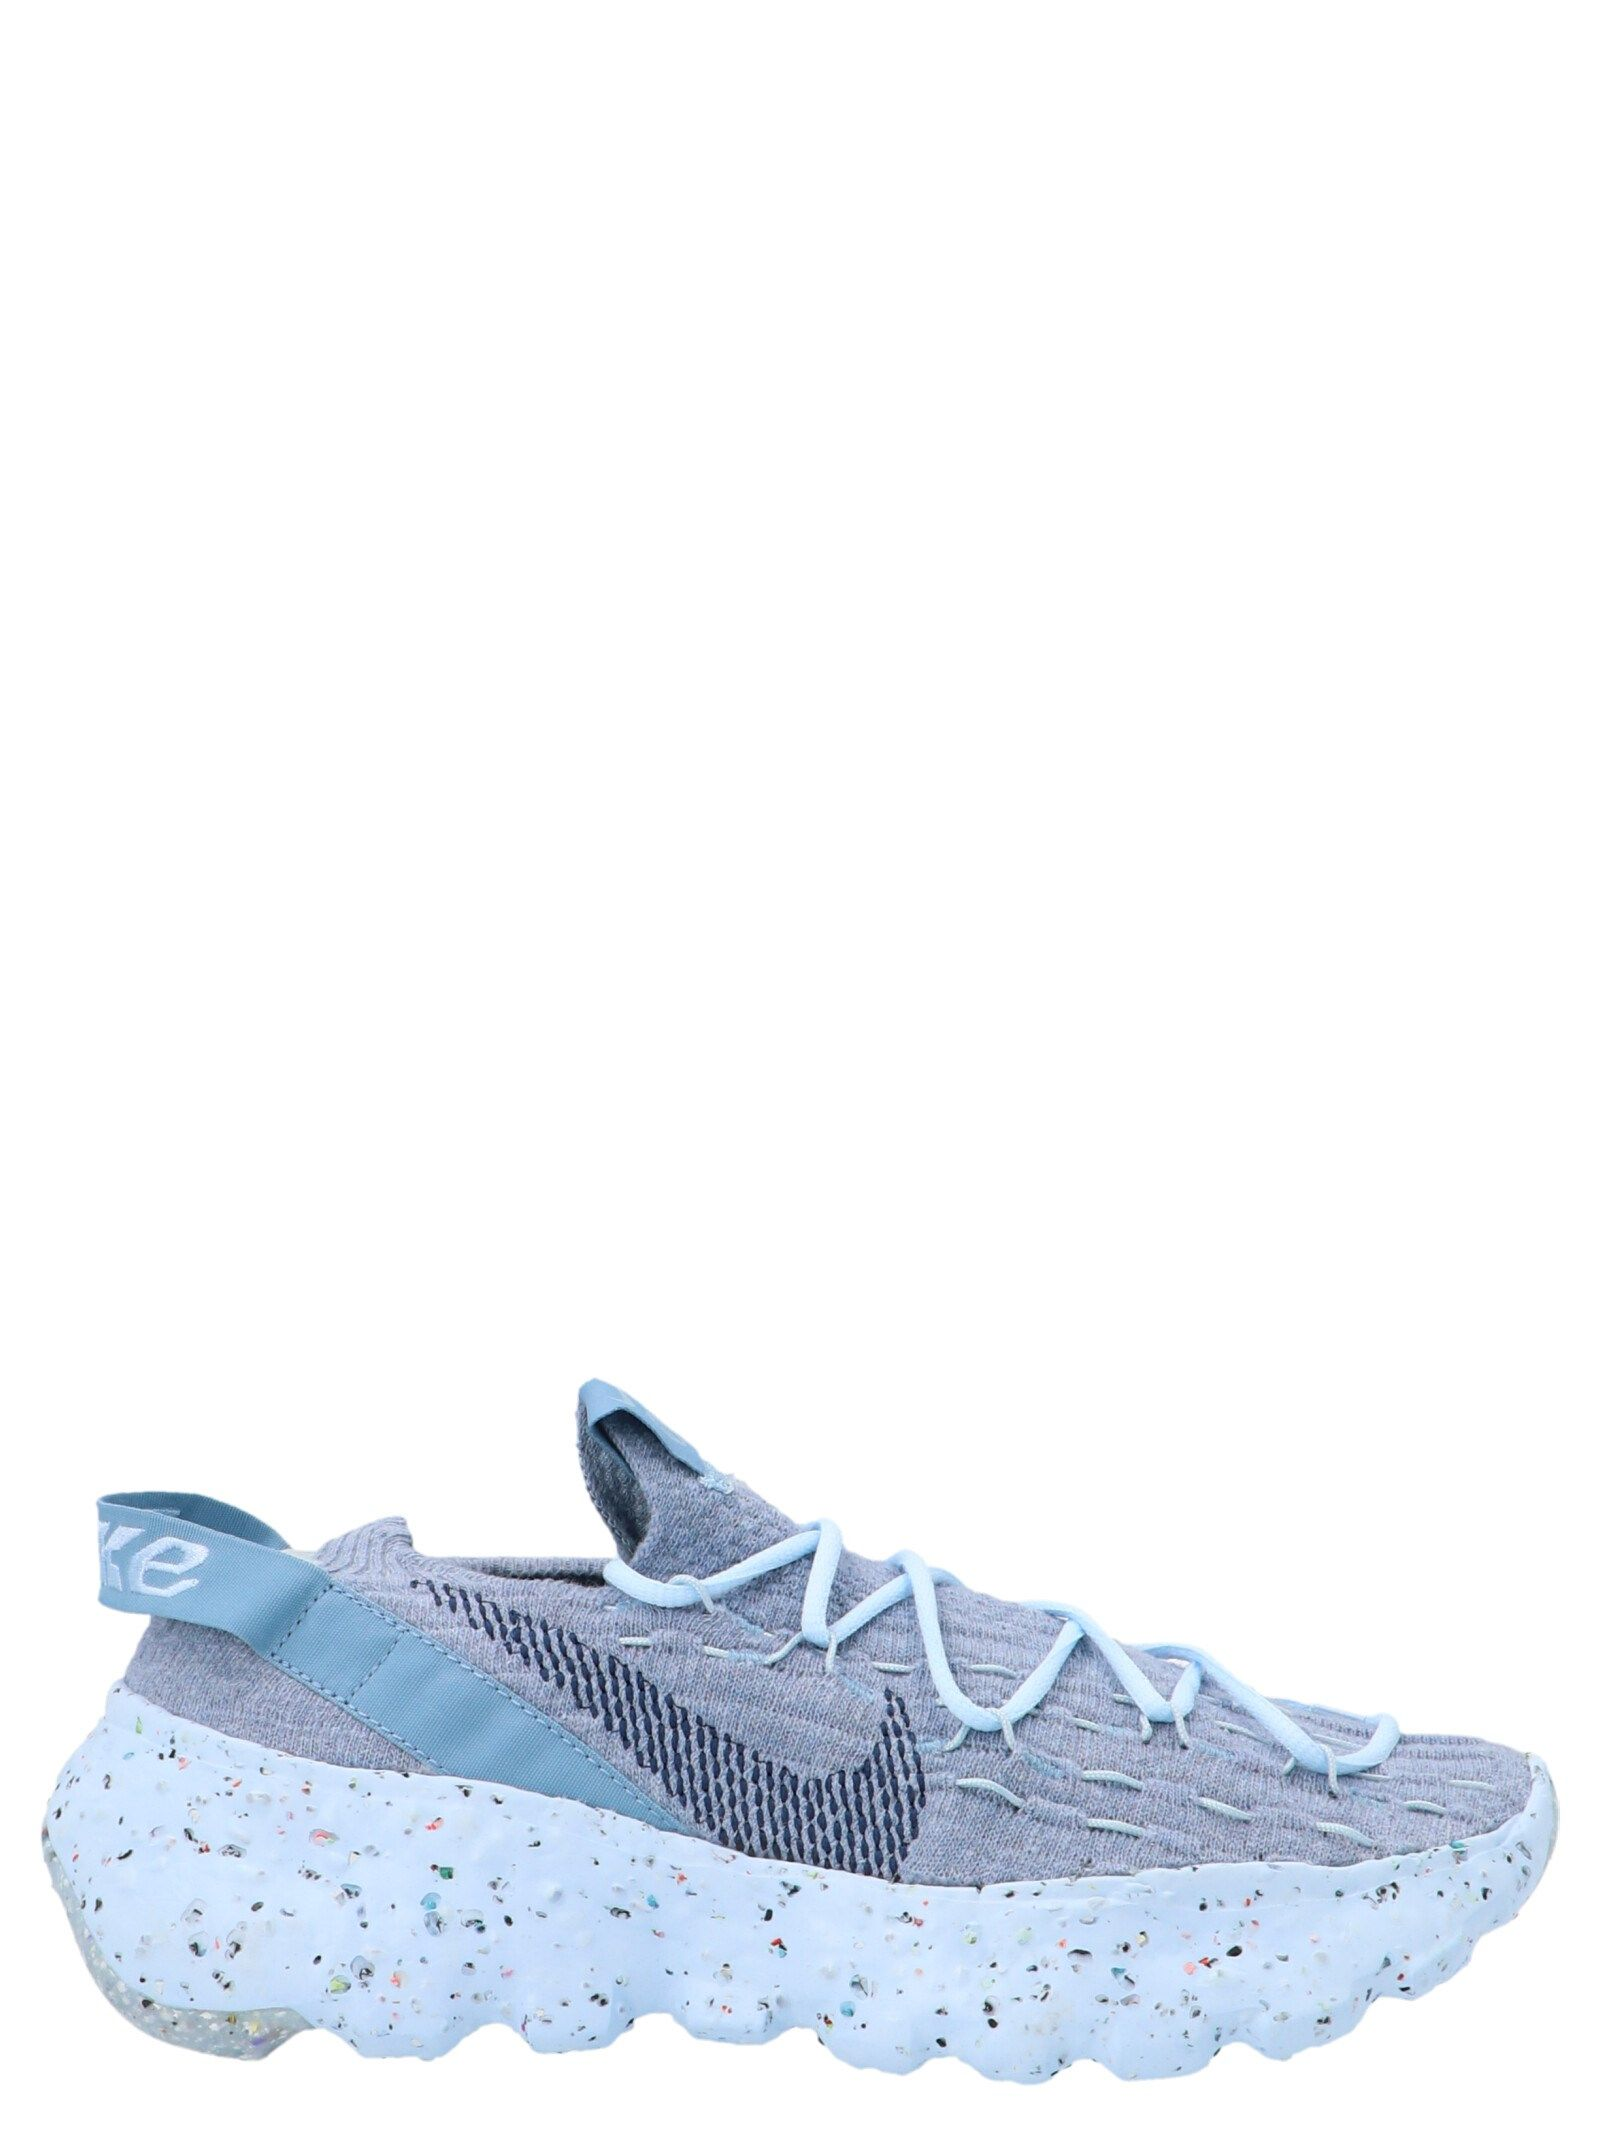 Nike Sneakers NIKE WOMEN'S CD3476401 BLUE OTHER MATERIALS SNEAKERS